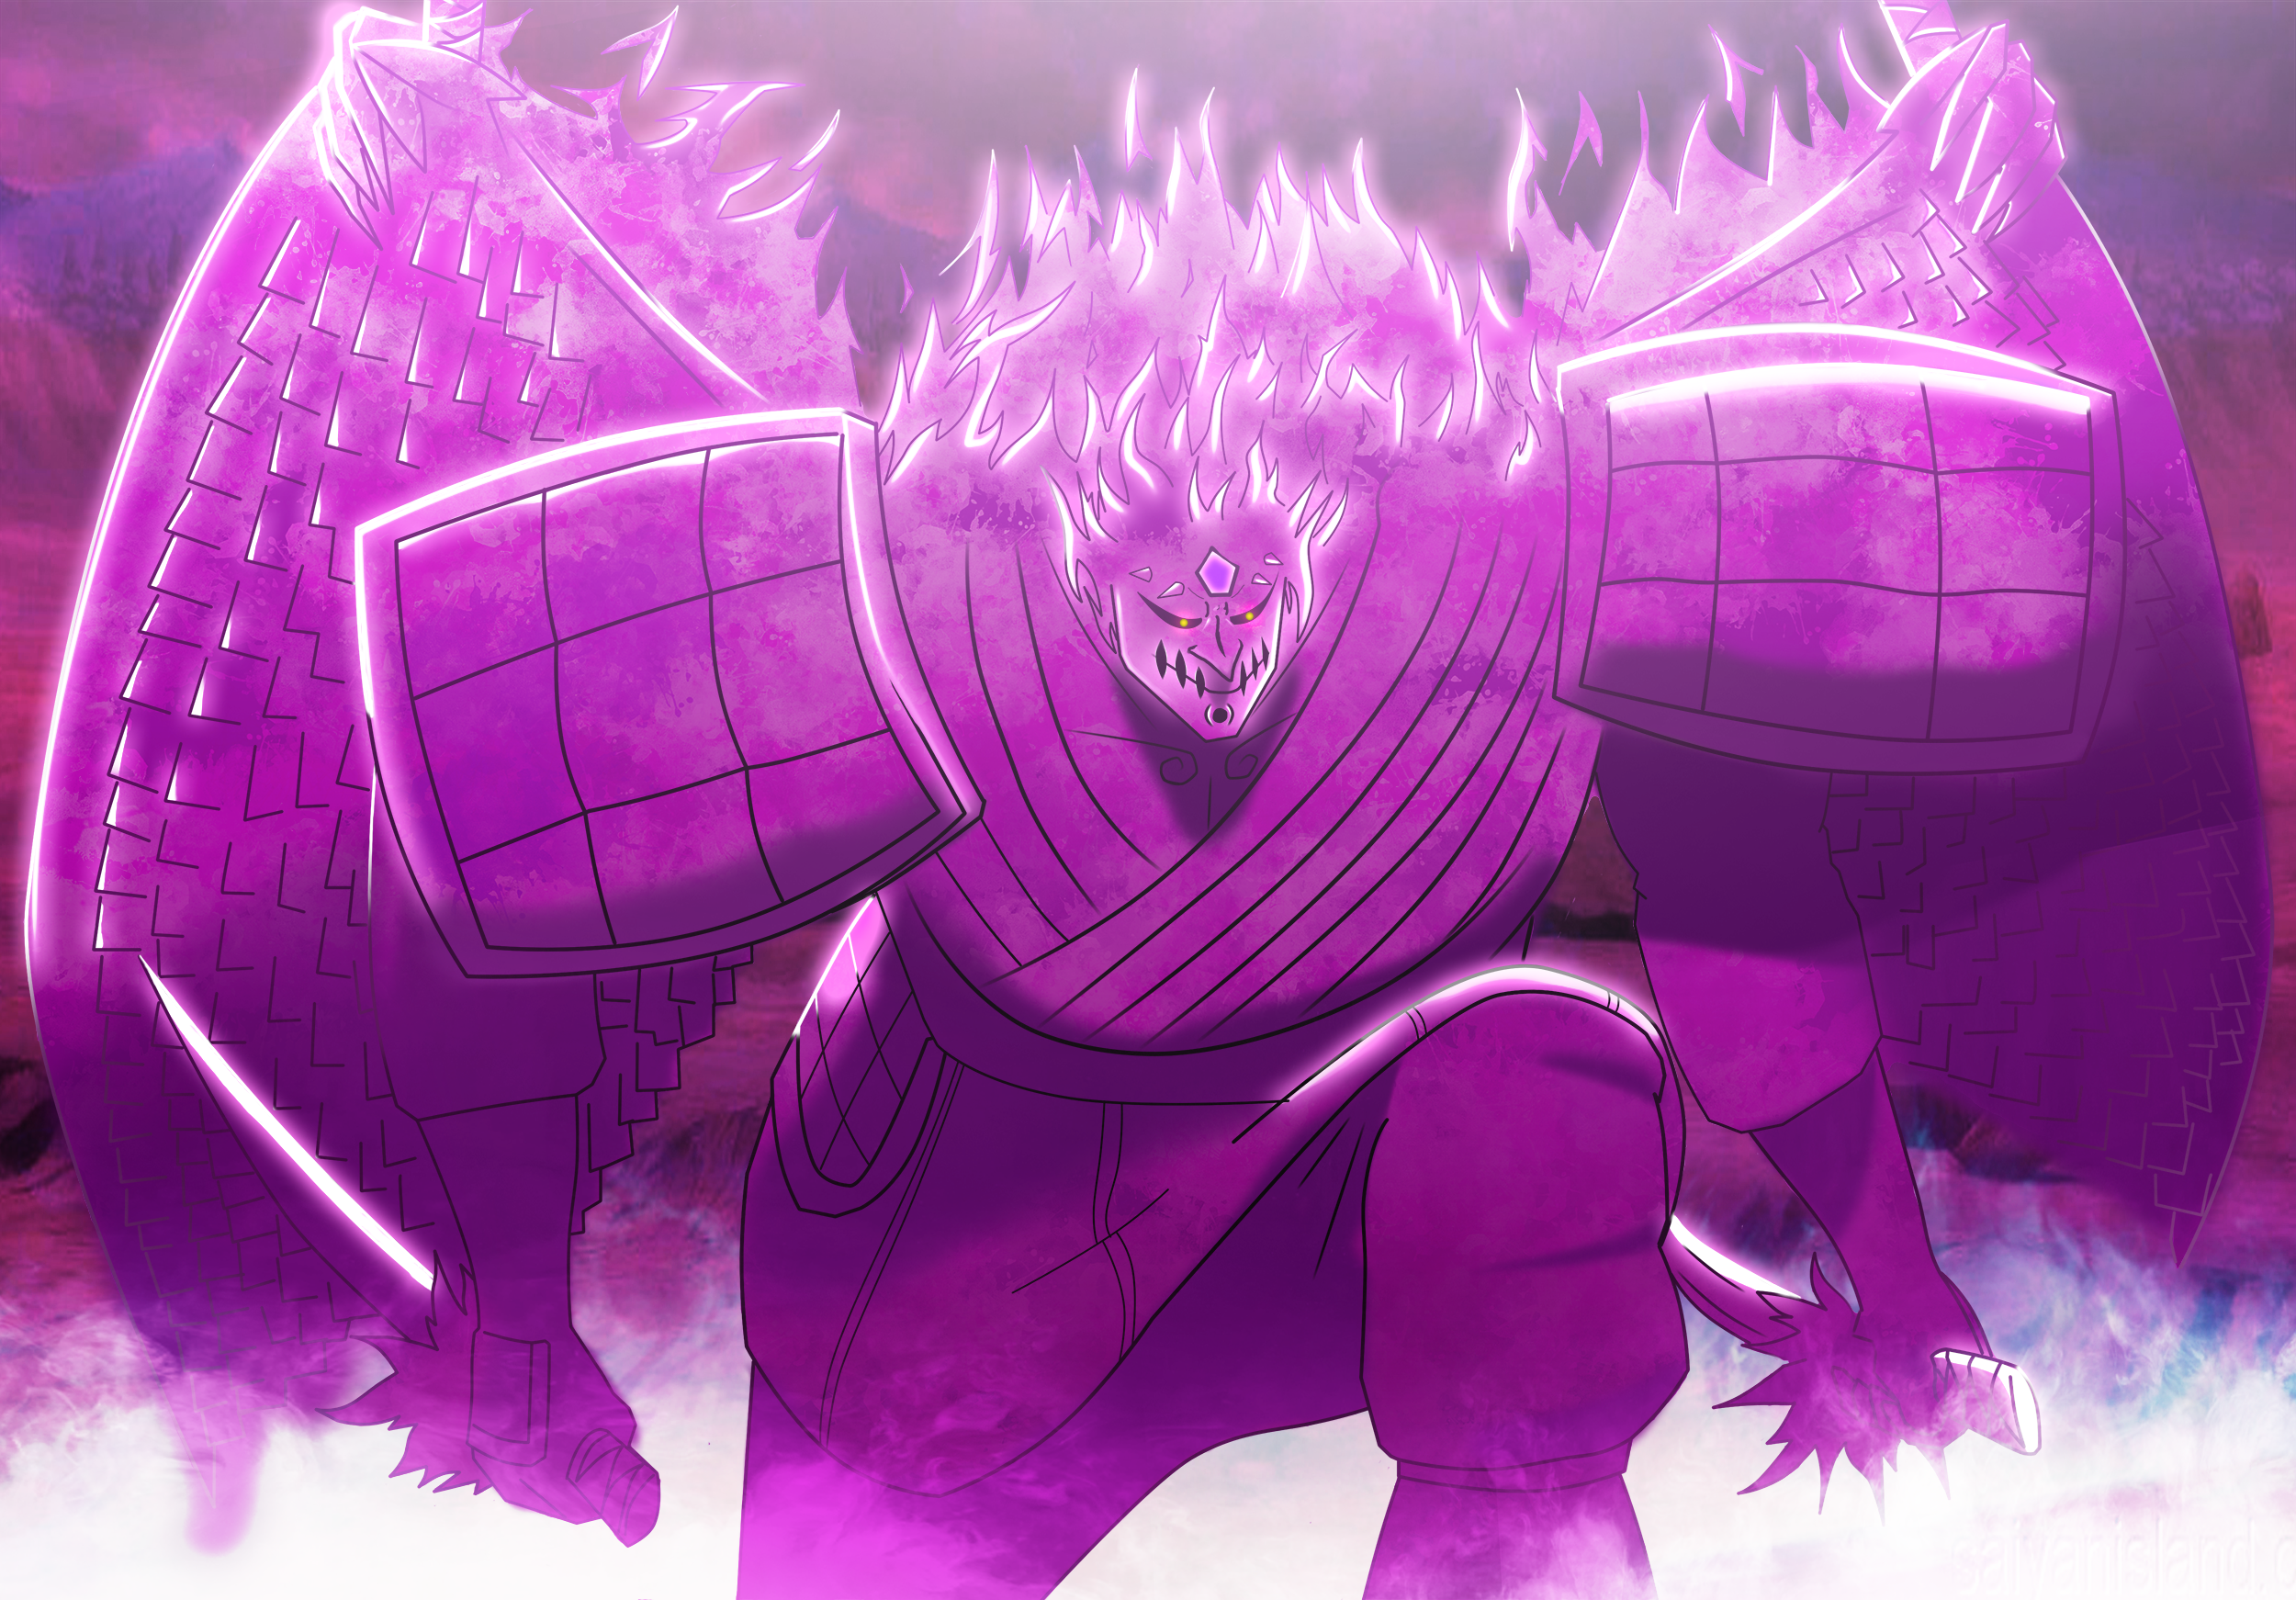 Sasuke's Perfect susanoo by drewriva on DeviantArt